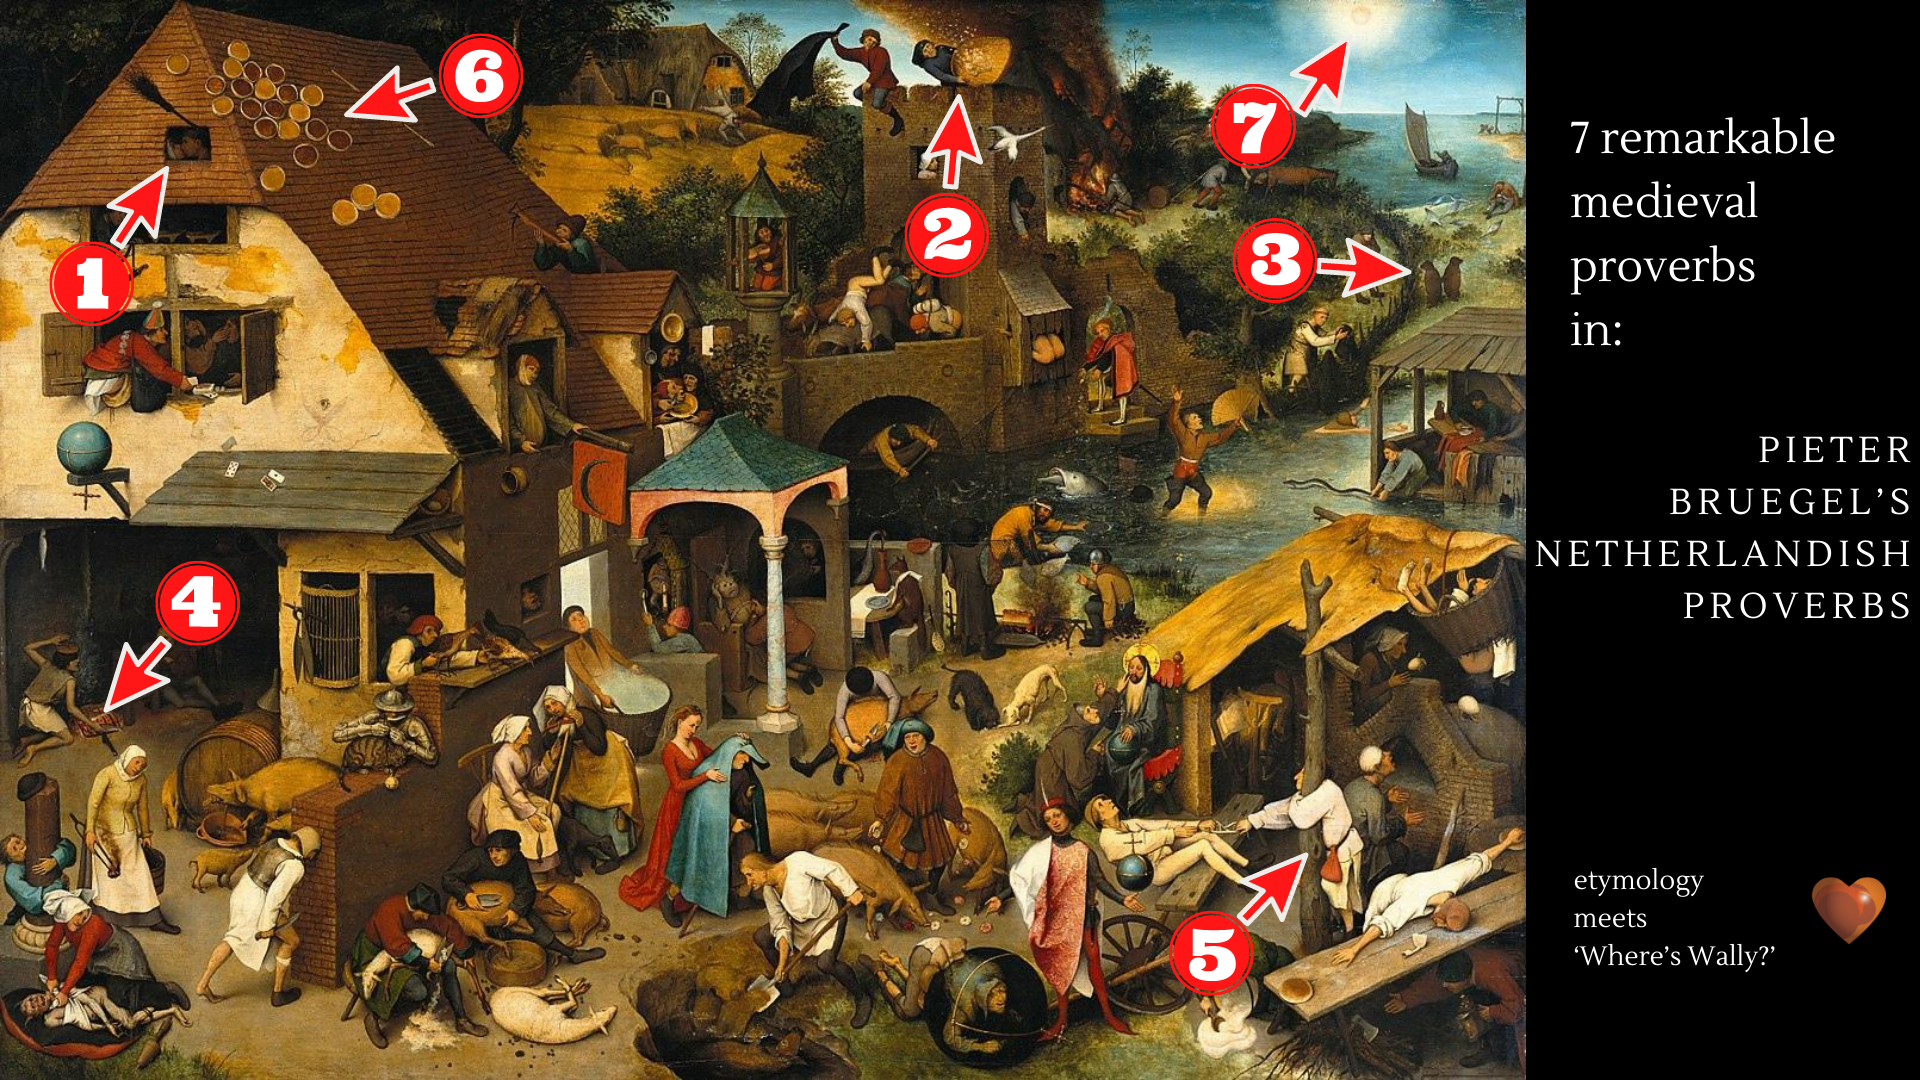 7 remarkable medieval proverbs in Pieter Bruegel's Netherlandish Proverbs